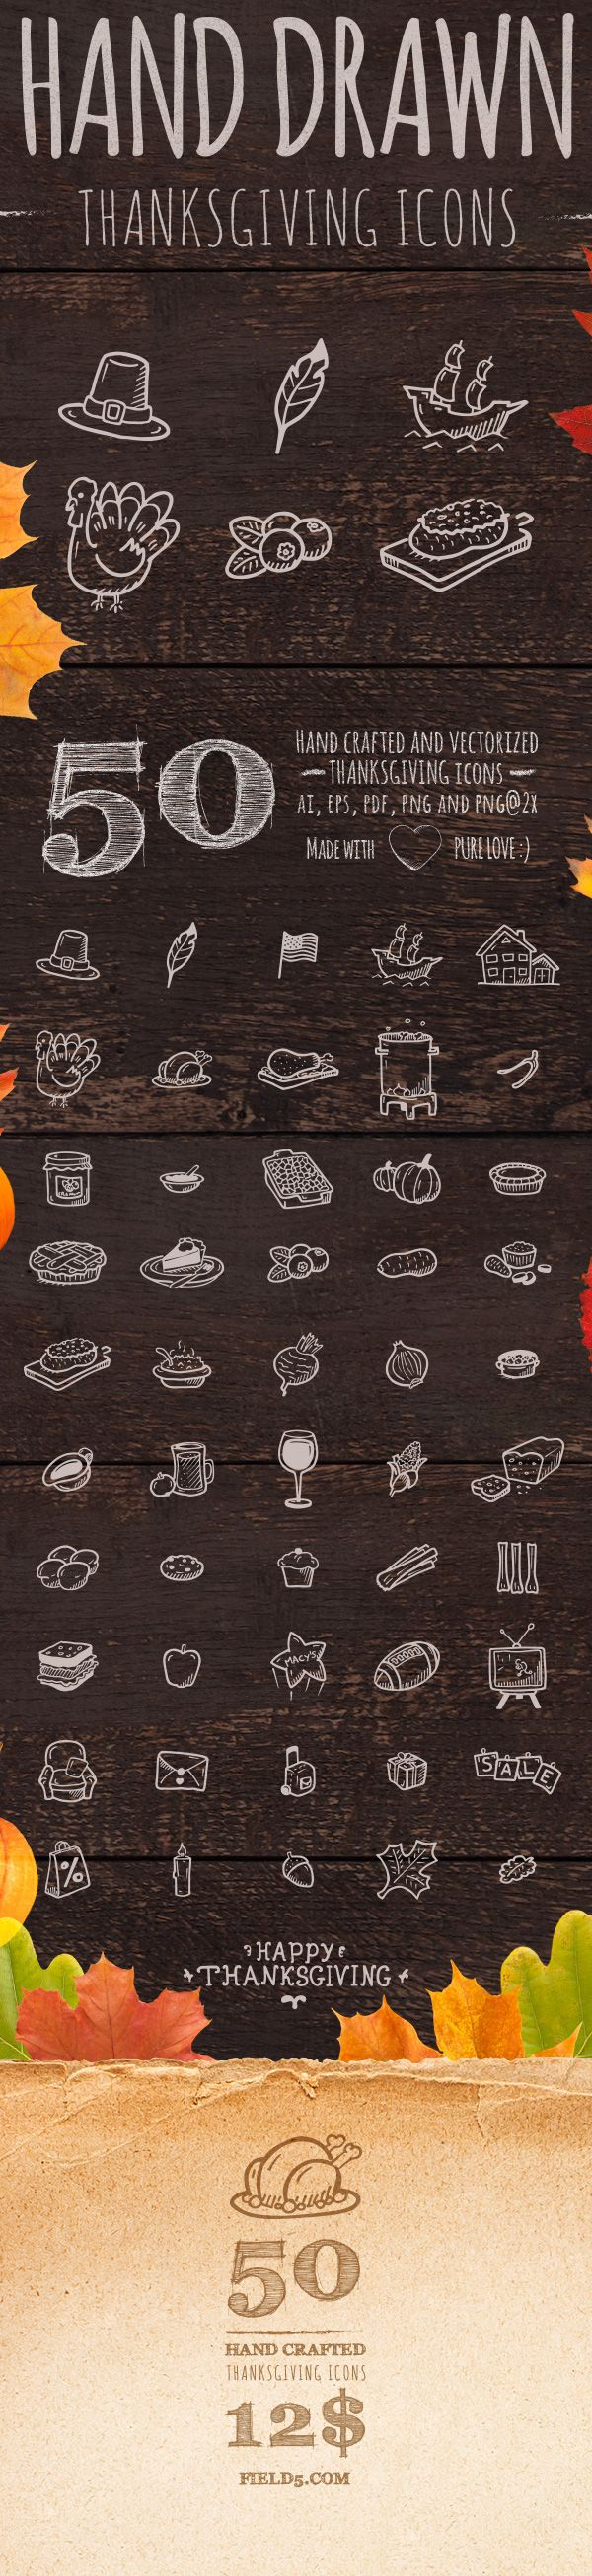 50 Hand Drawn Thanksgiving Icons on Behance